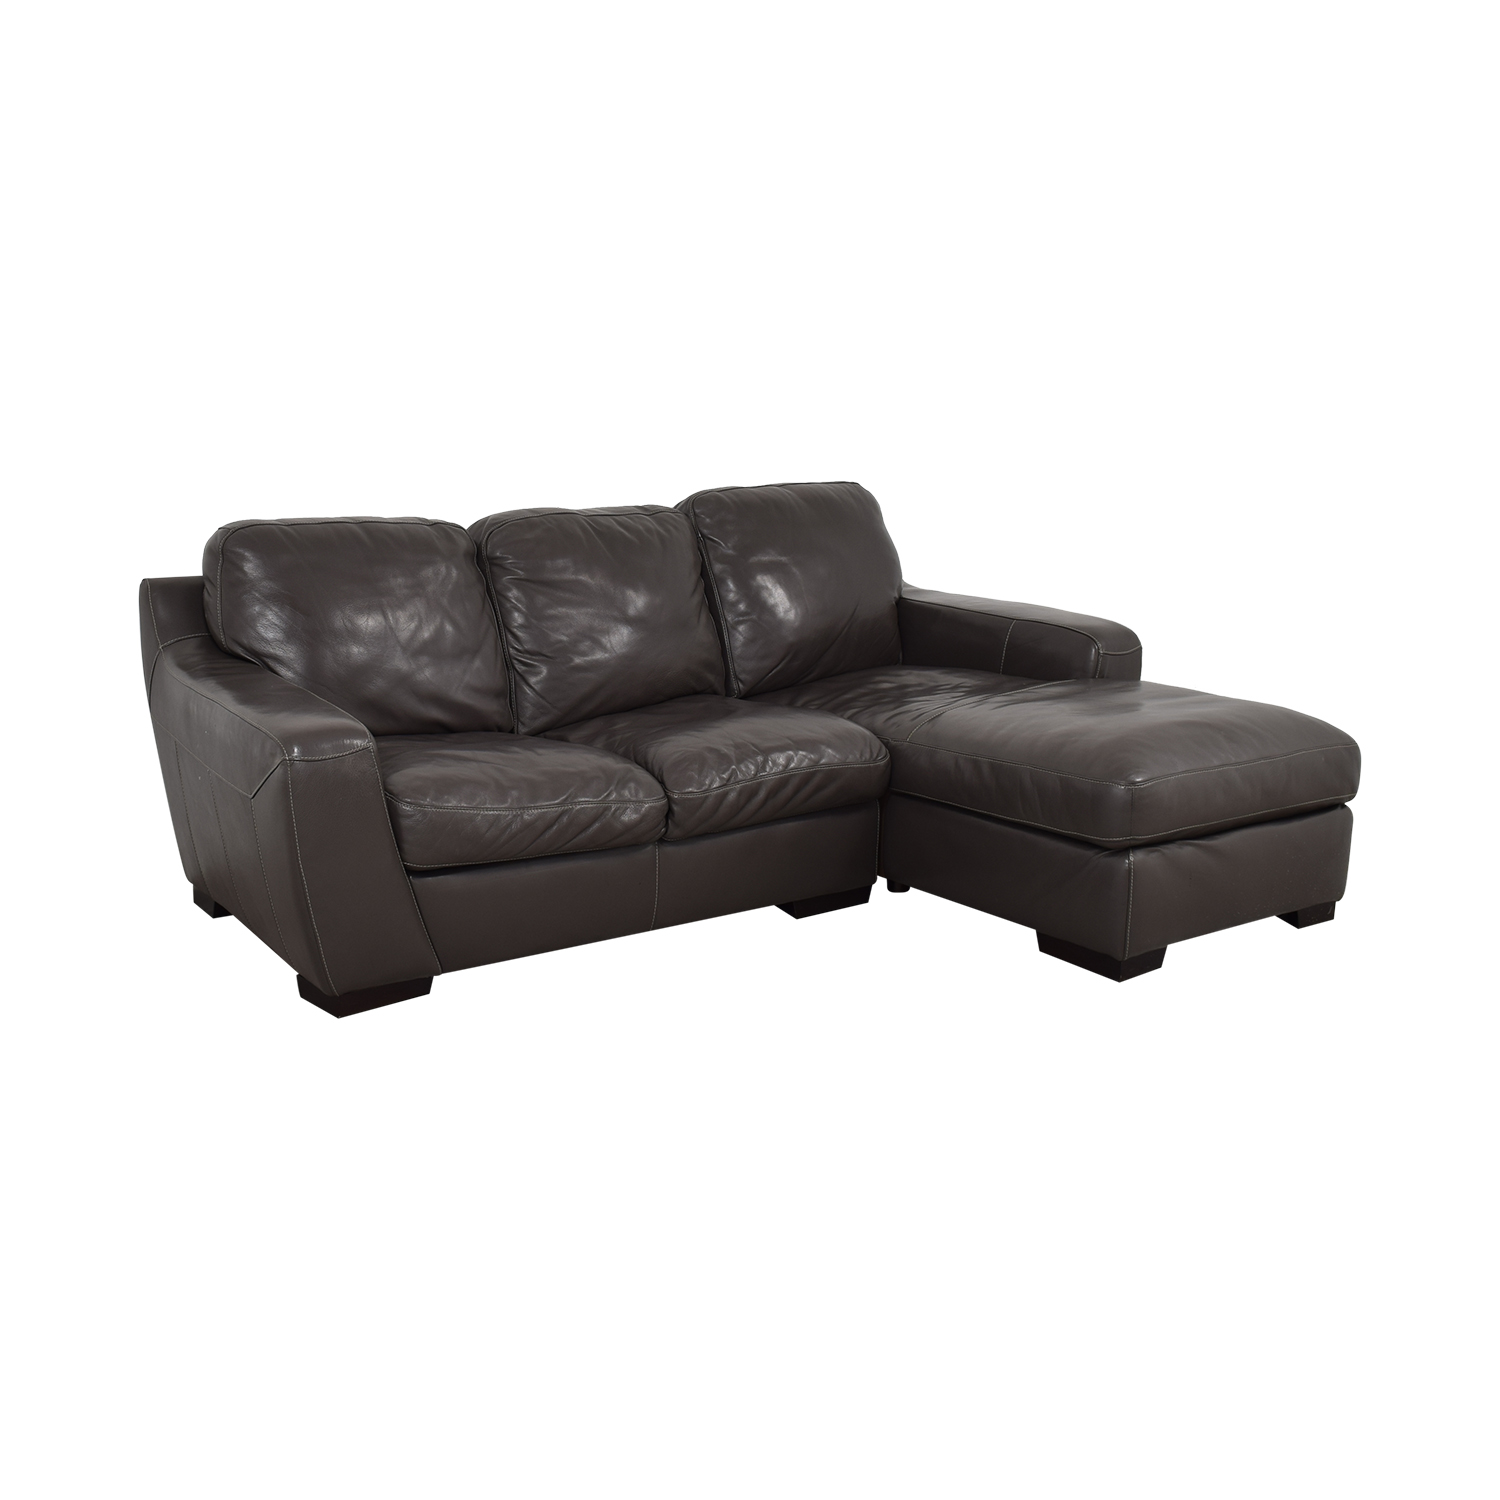 shop Raymour & Flanigan Raymour & Flanigan Stone Chaise Sectional online